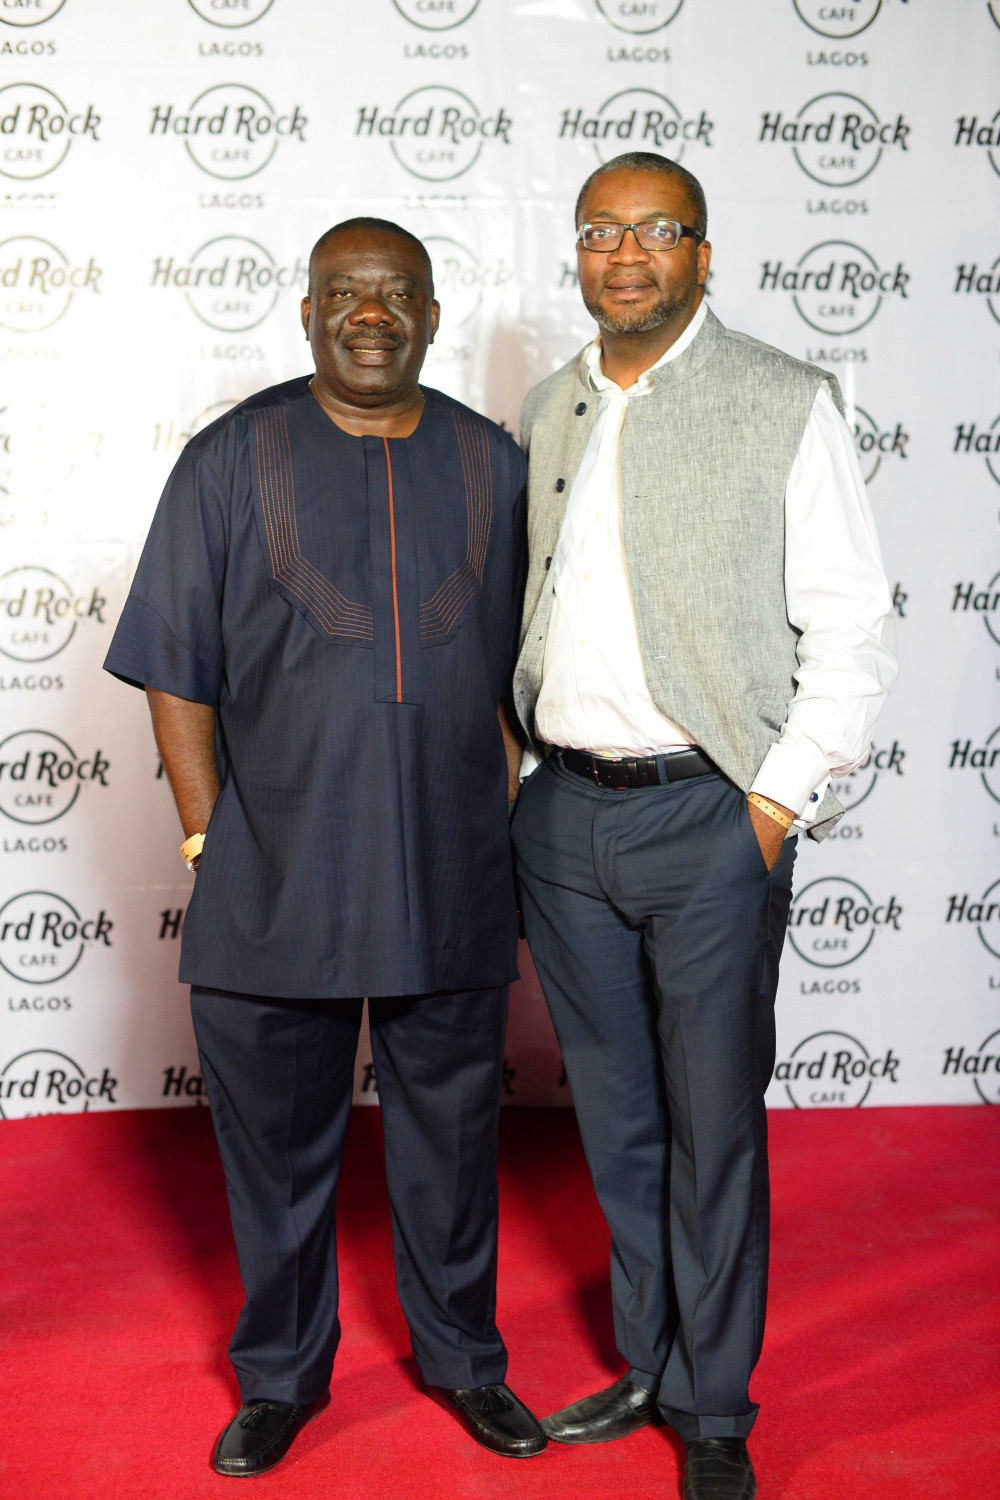 Hard Rock Cafe Lagos Launch BellaNaija DSC_0111